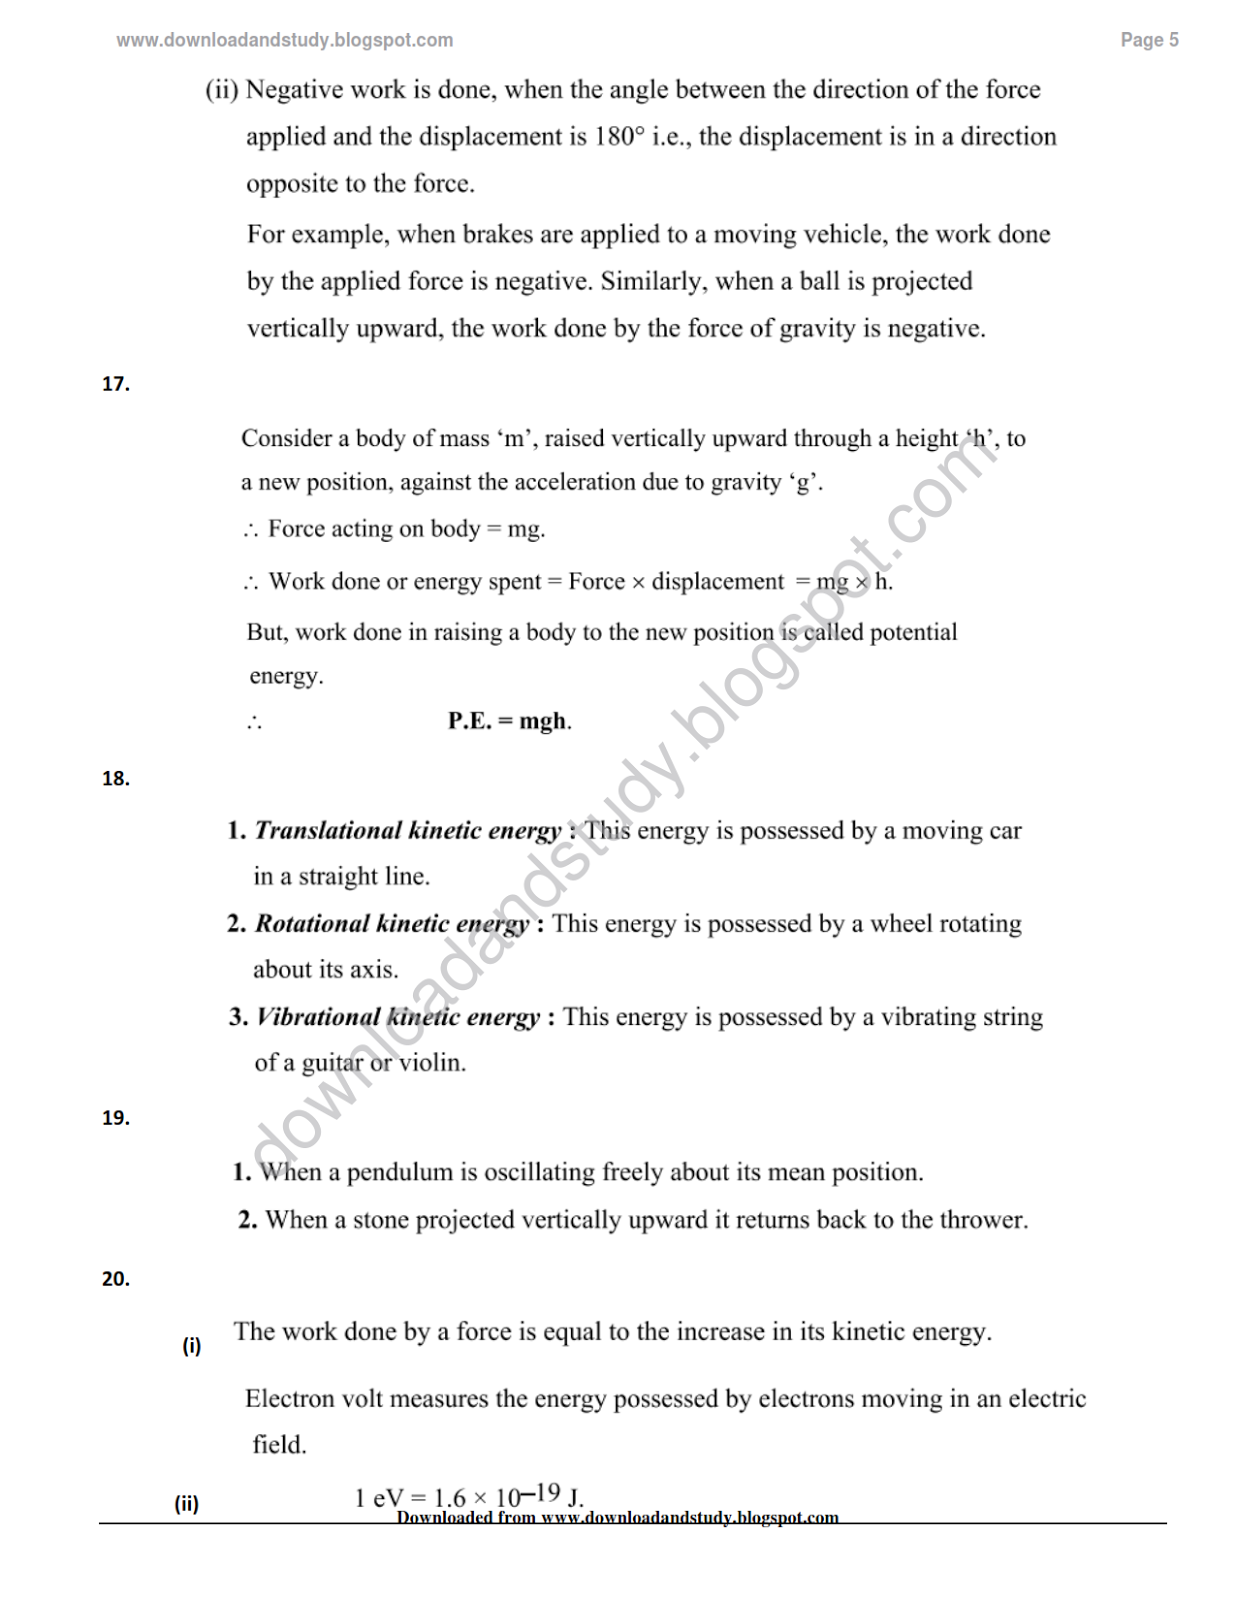 Worksheets Electrochemistry Worksheet uncategorized electrochemistry worksheet klimttreeoflife resume site free calorimetry paydayloansusaprh com ap chem homework quantitative electroc